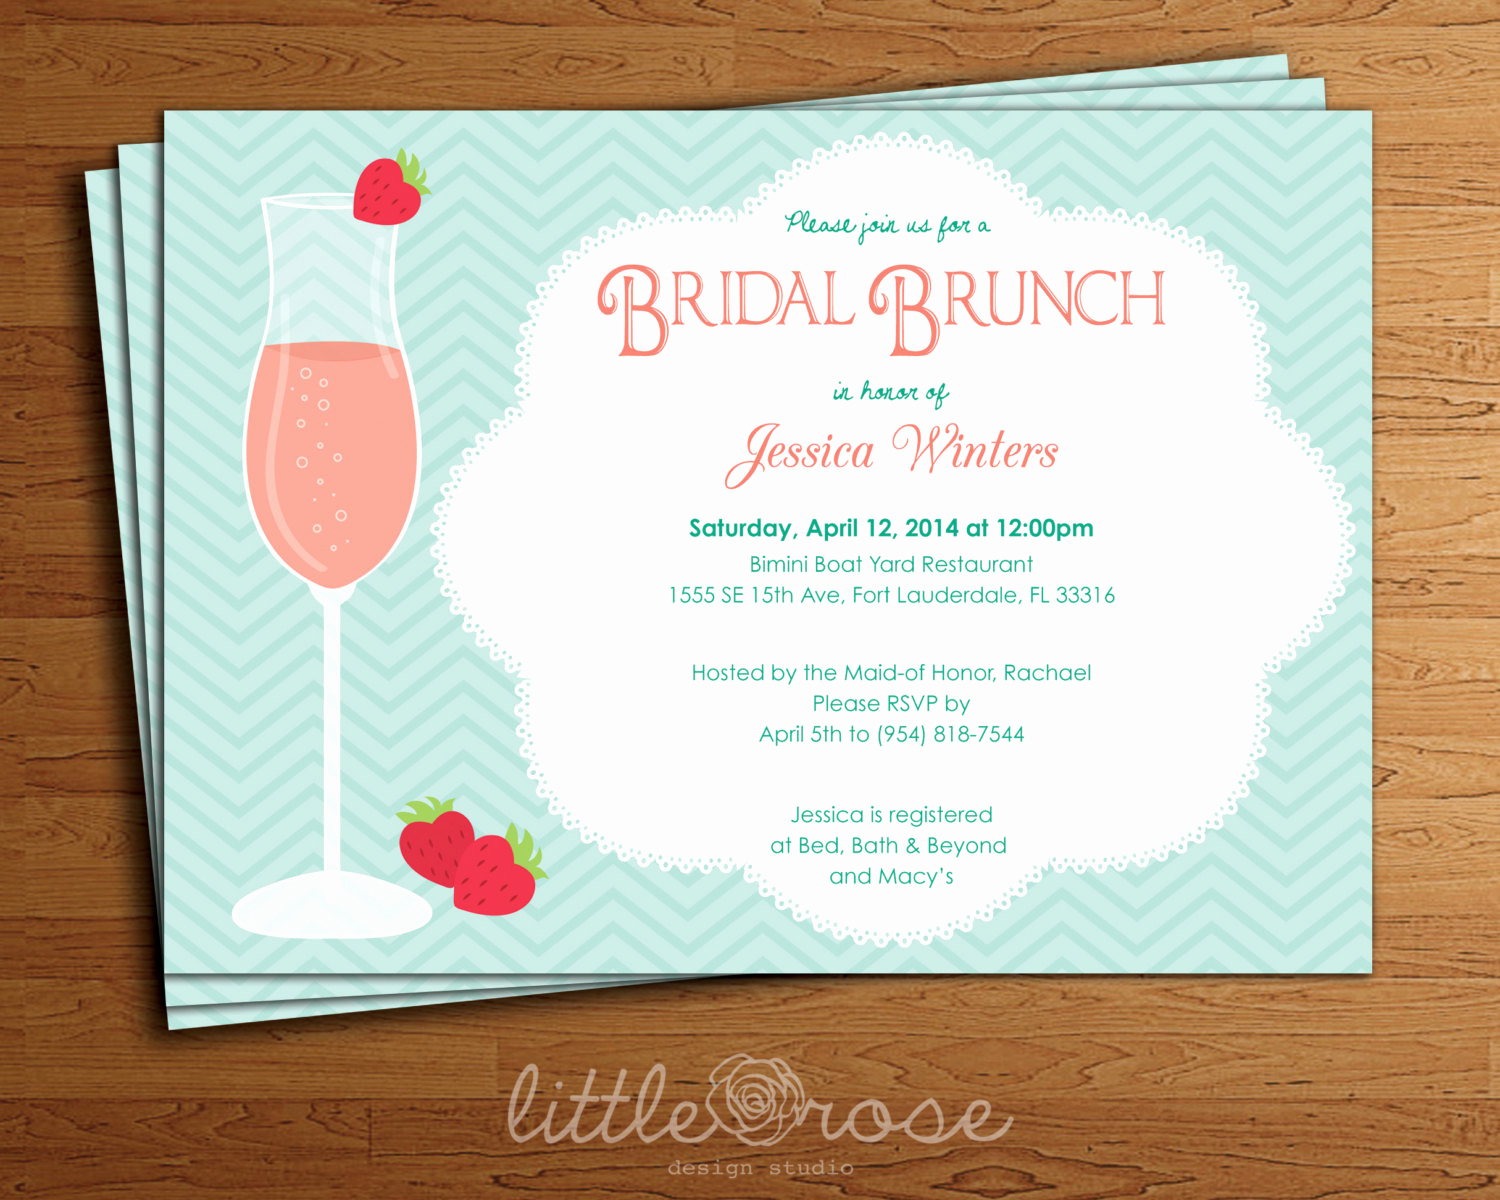 Bridal Brunch Invitation Wording New Mimosa Bridal Brunch Invitation Bridal Shower Invitation